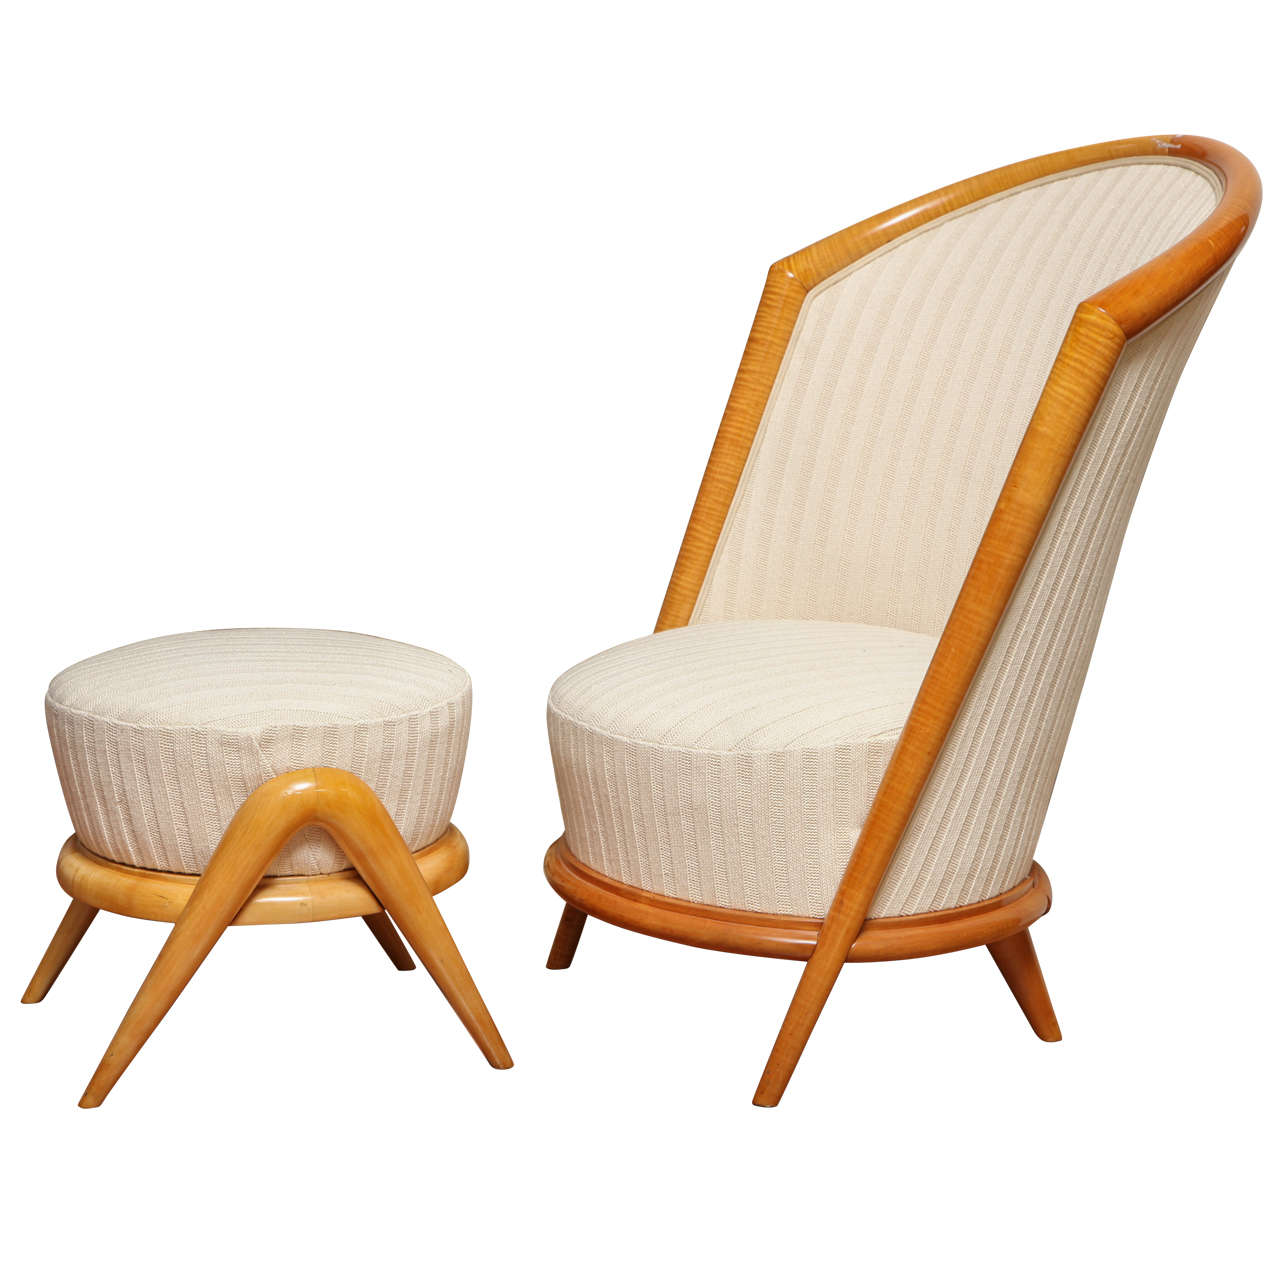 French fireside chair, 1950s, offered by Paul Stamati Gallery LLC